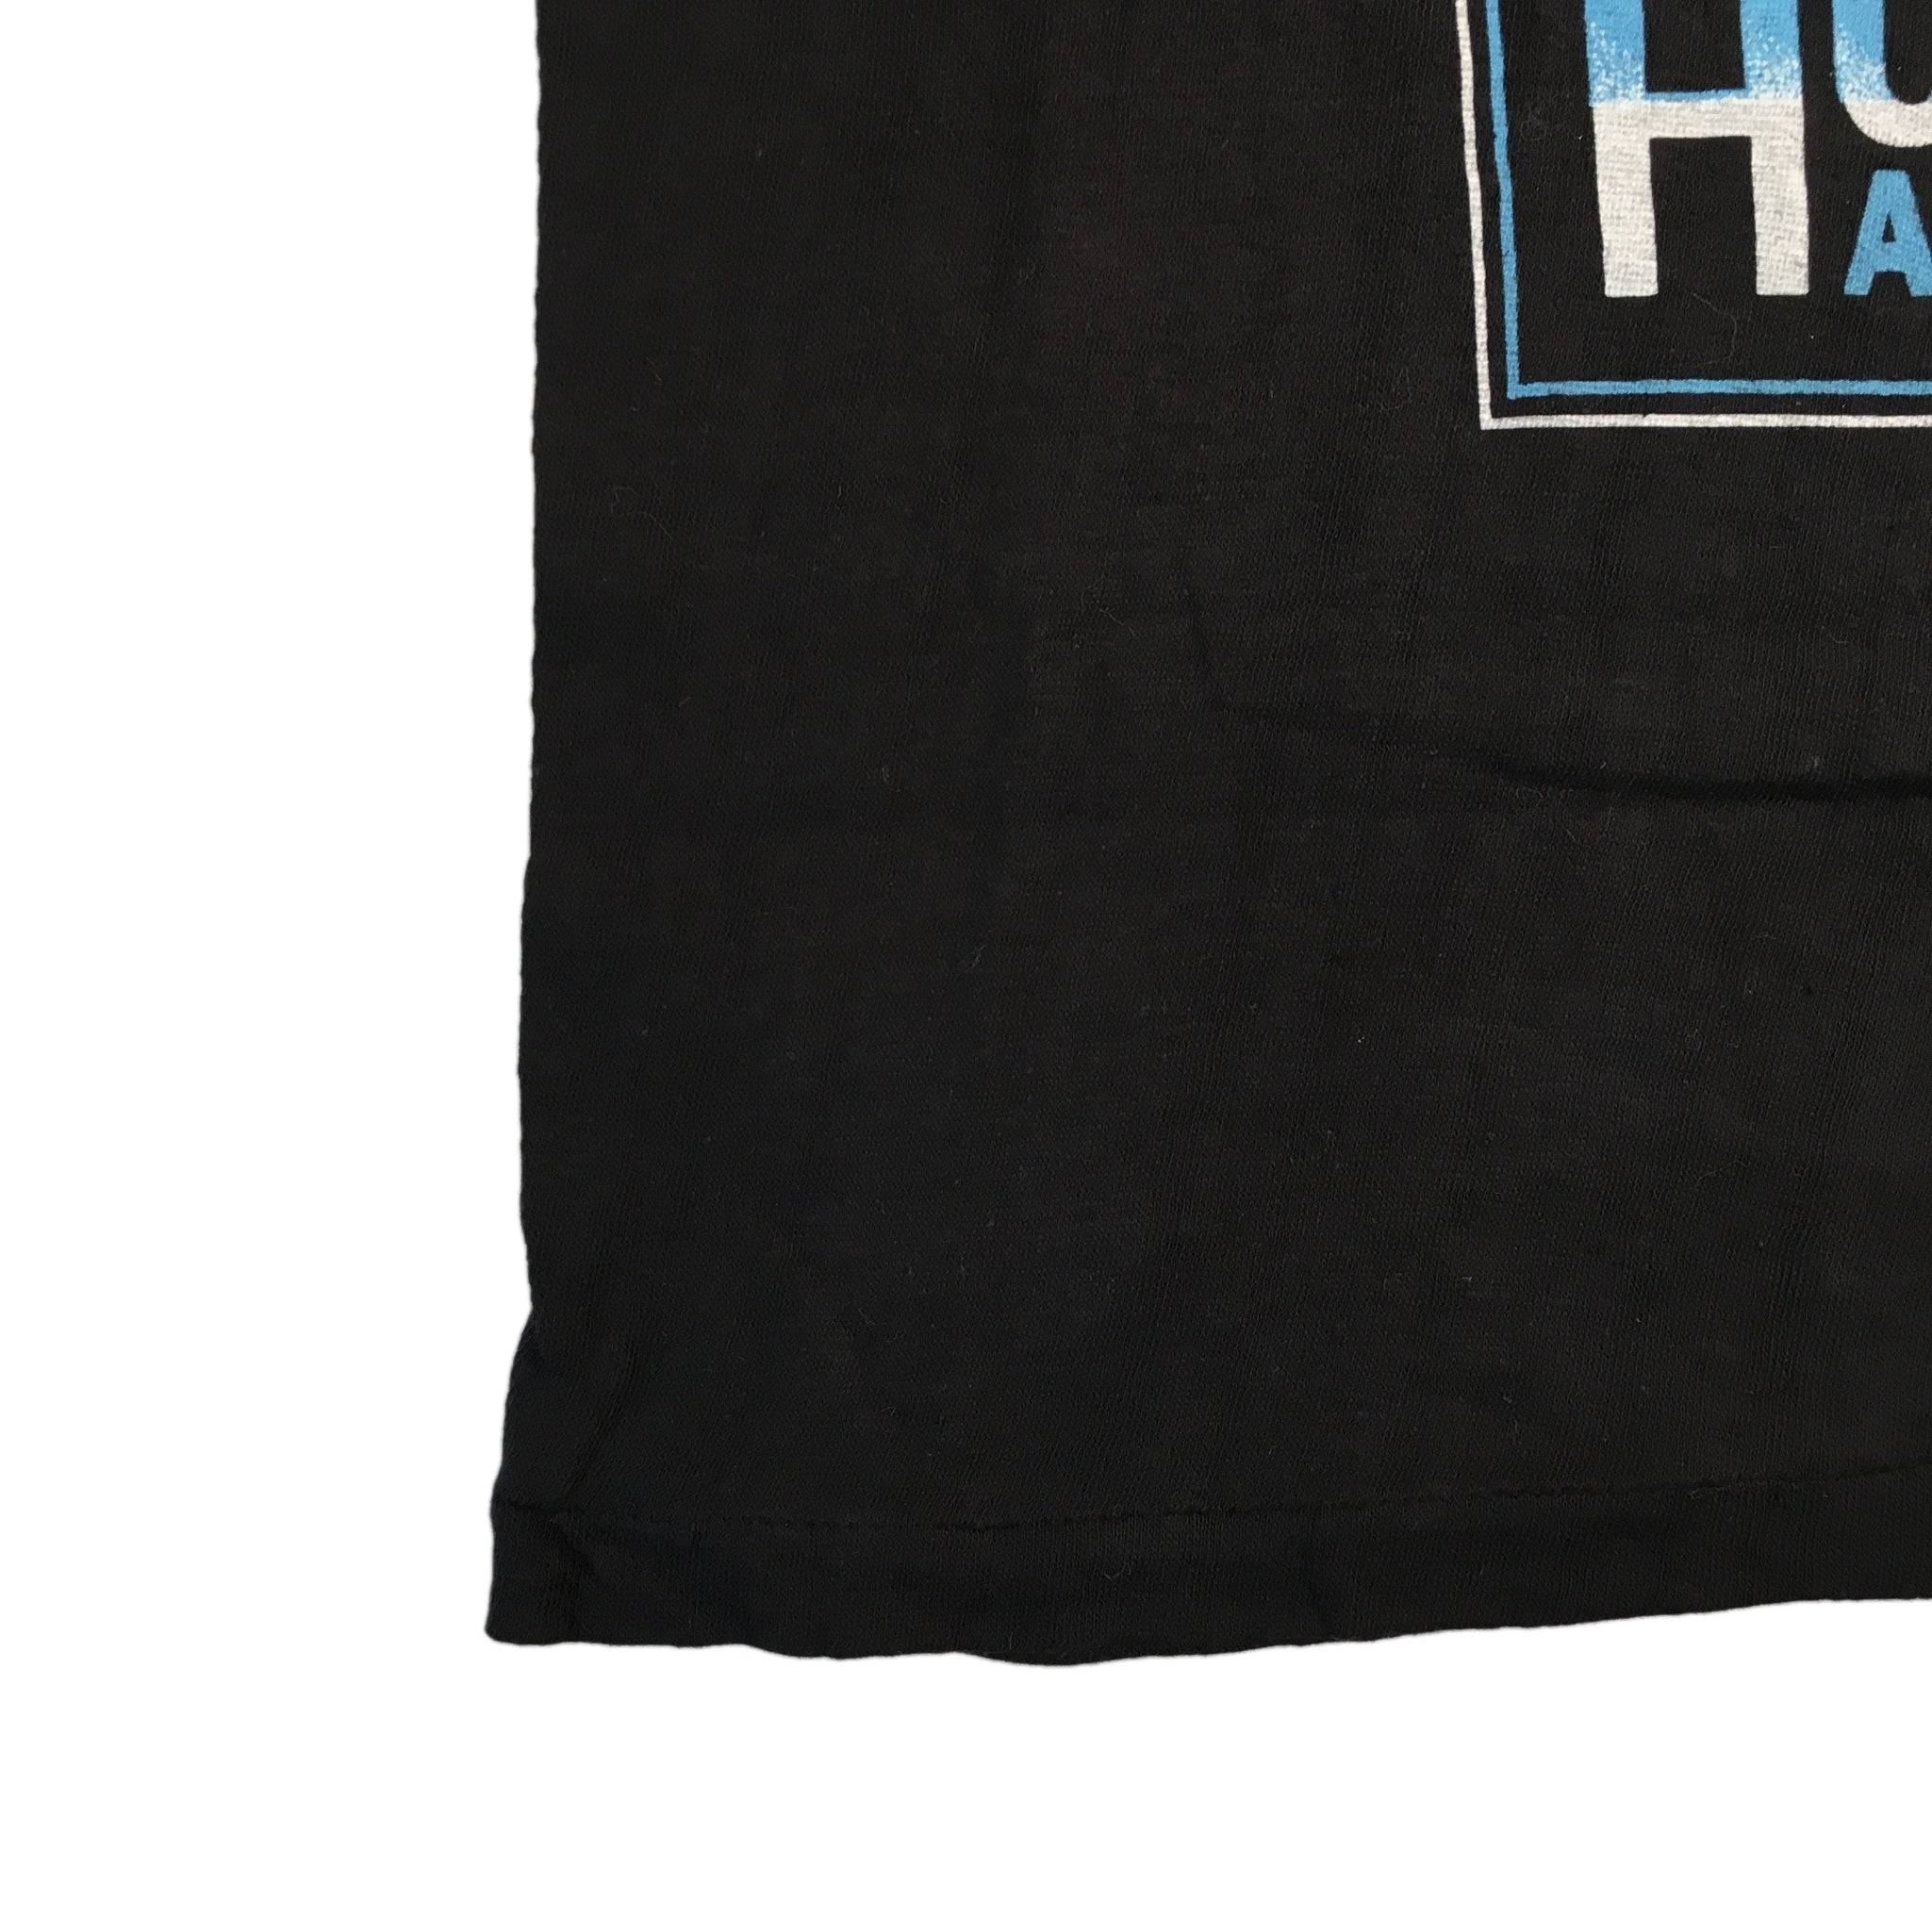 "Vintage Huey Lewis And The News ""1980's"" T-Shirt"